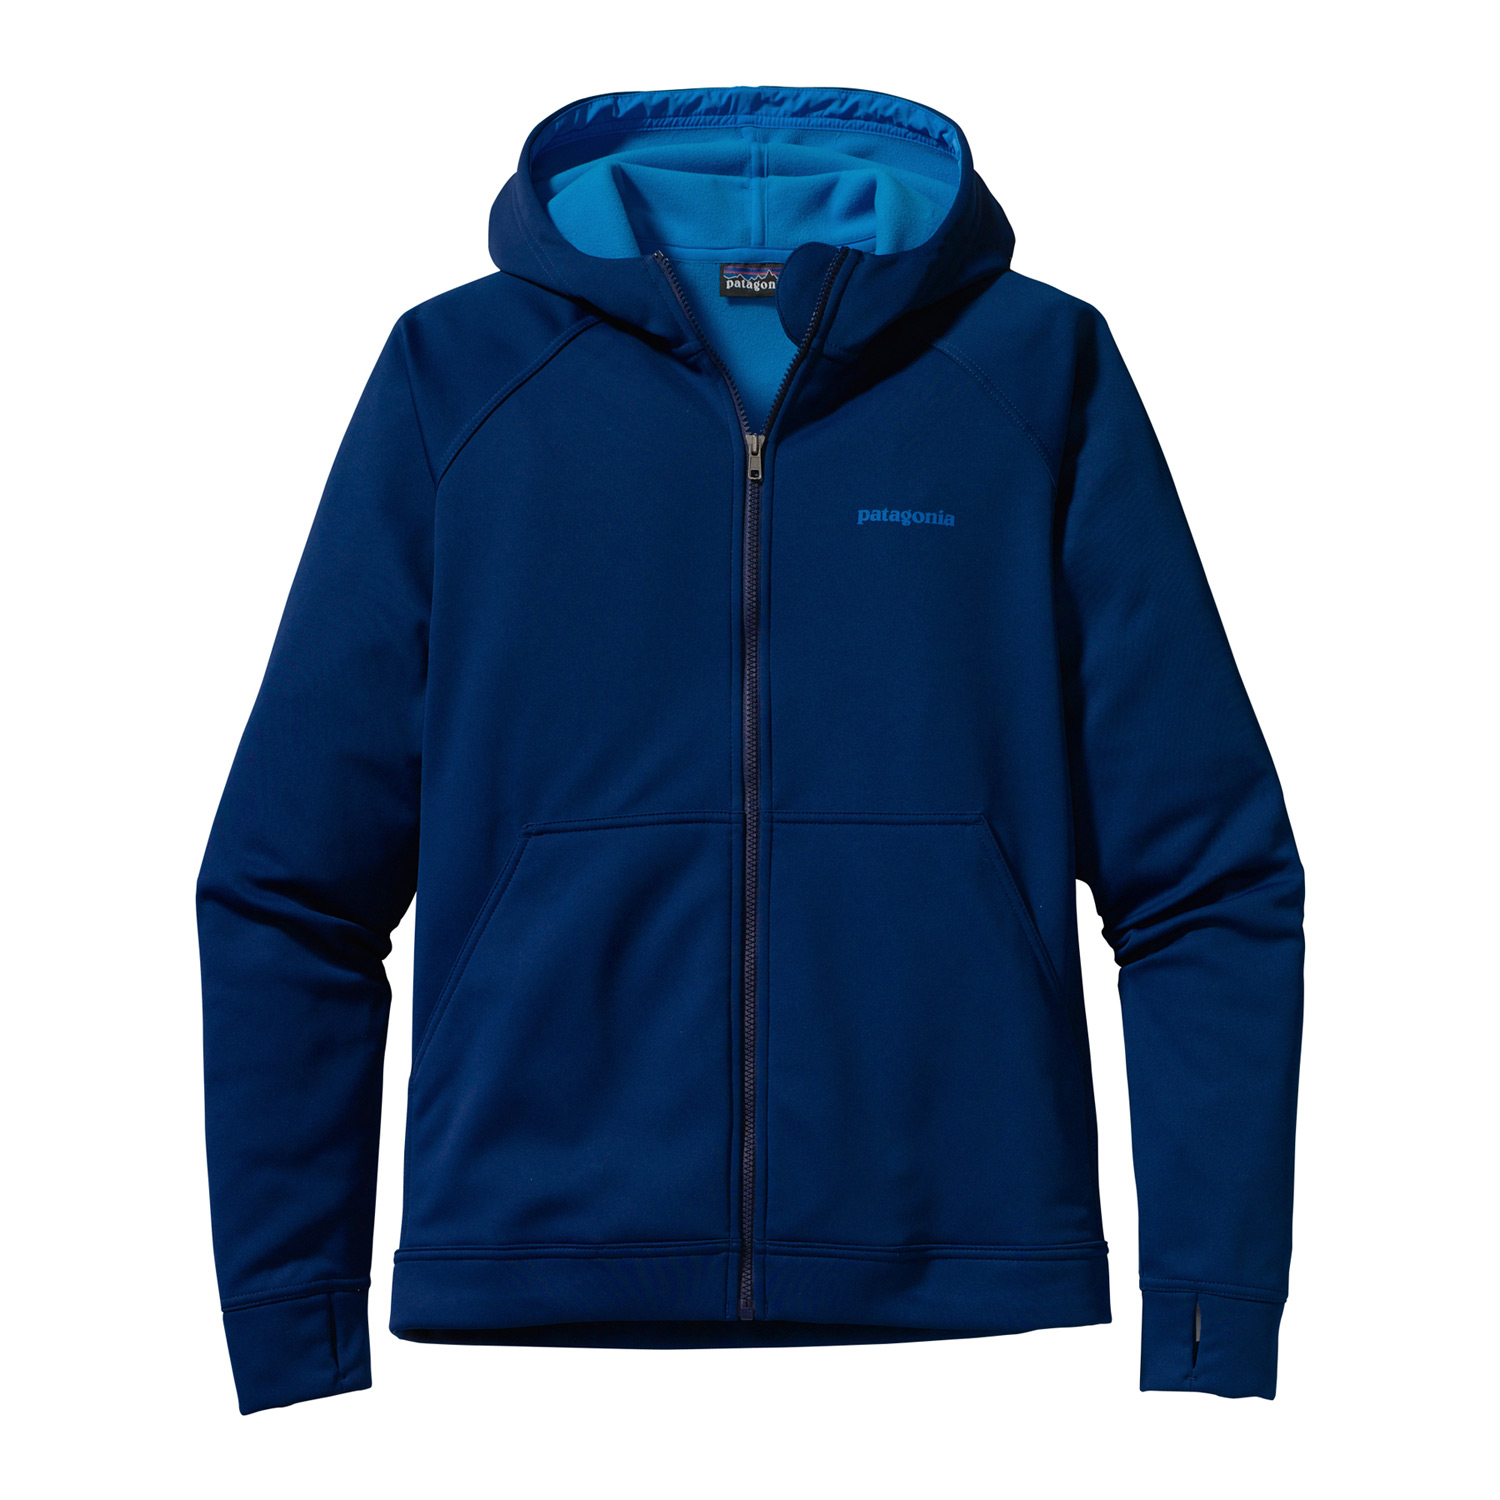 Made of water-resistant polyester knit and microfleece, the Patagonia Slopestyle Softshell is your go-anywhere hoody, from pre-dawn waxing sessions to high-noon corn runsKey Features of the Patagonia Slopestyle Softshell Jacket: Soft and stretchy polyester face is treated with a Deluge DWR (durable water repellent) finish to shed moisture and light snow Brushed fleece interior; high collar design for warmth and neck protection Fleece-lined hood is nice and cozy; not helmet-compatible Cuffs feature thumb-loops to ensure total wrist coverage Hem can cinch on extra chilly days to keep the cold out; drawcord exits into hand pockets for easy adjustments Pockets: Two handwarmers, each with a hidden security pocket Relaxed fit (20.5 oz) 581 g Fabric: 7.5-oz 100% polyester knit bonded to polyester microfleece with a Deluge DWR finish - $90.95